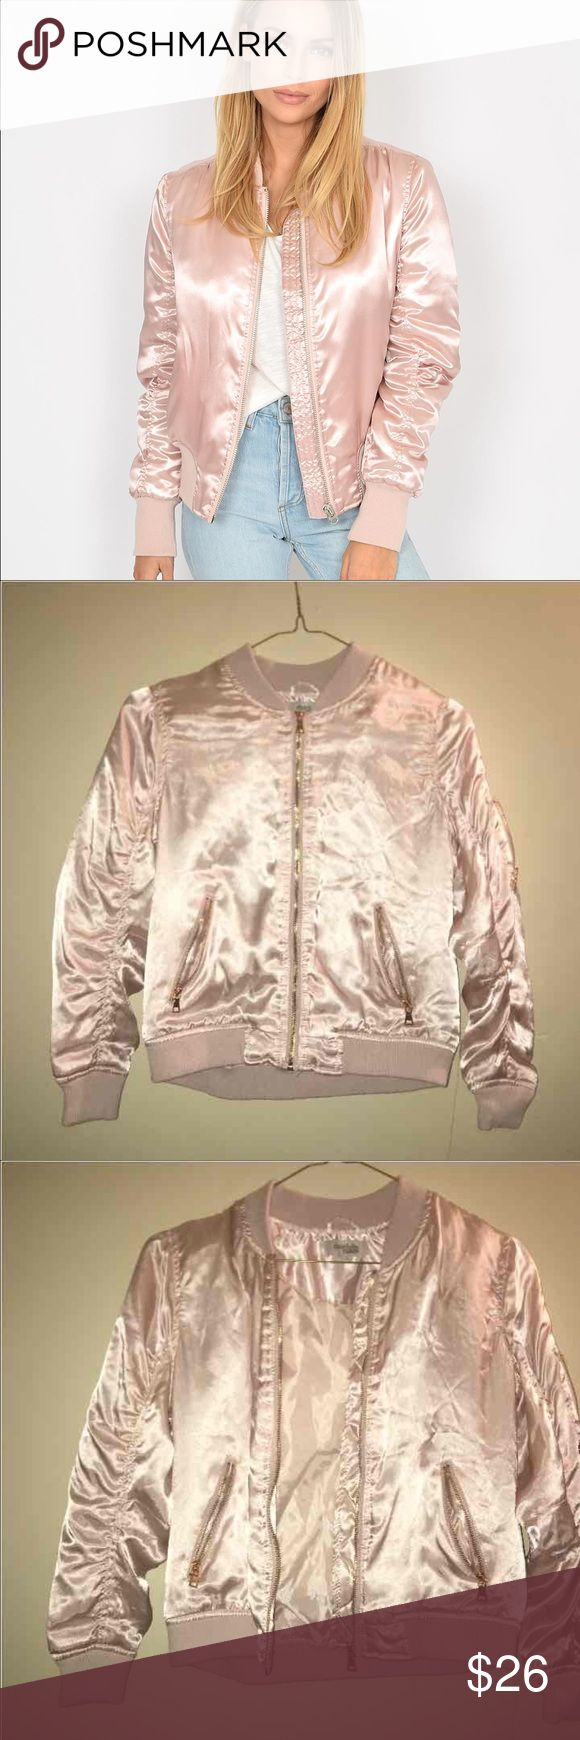 Light pink satin Bomber jacket FAST SHIPPING ⚡️⚡️ Stylish and popular bomber jacket  Goes with everything, perfect condition No flaws!  *first photo used for reference Charlotte Russe Jackets & Coats